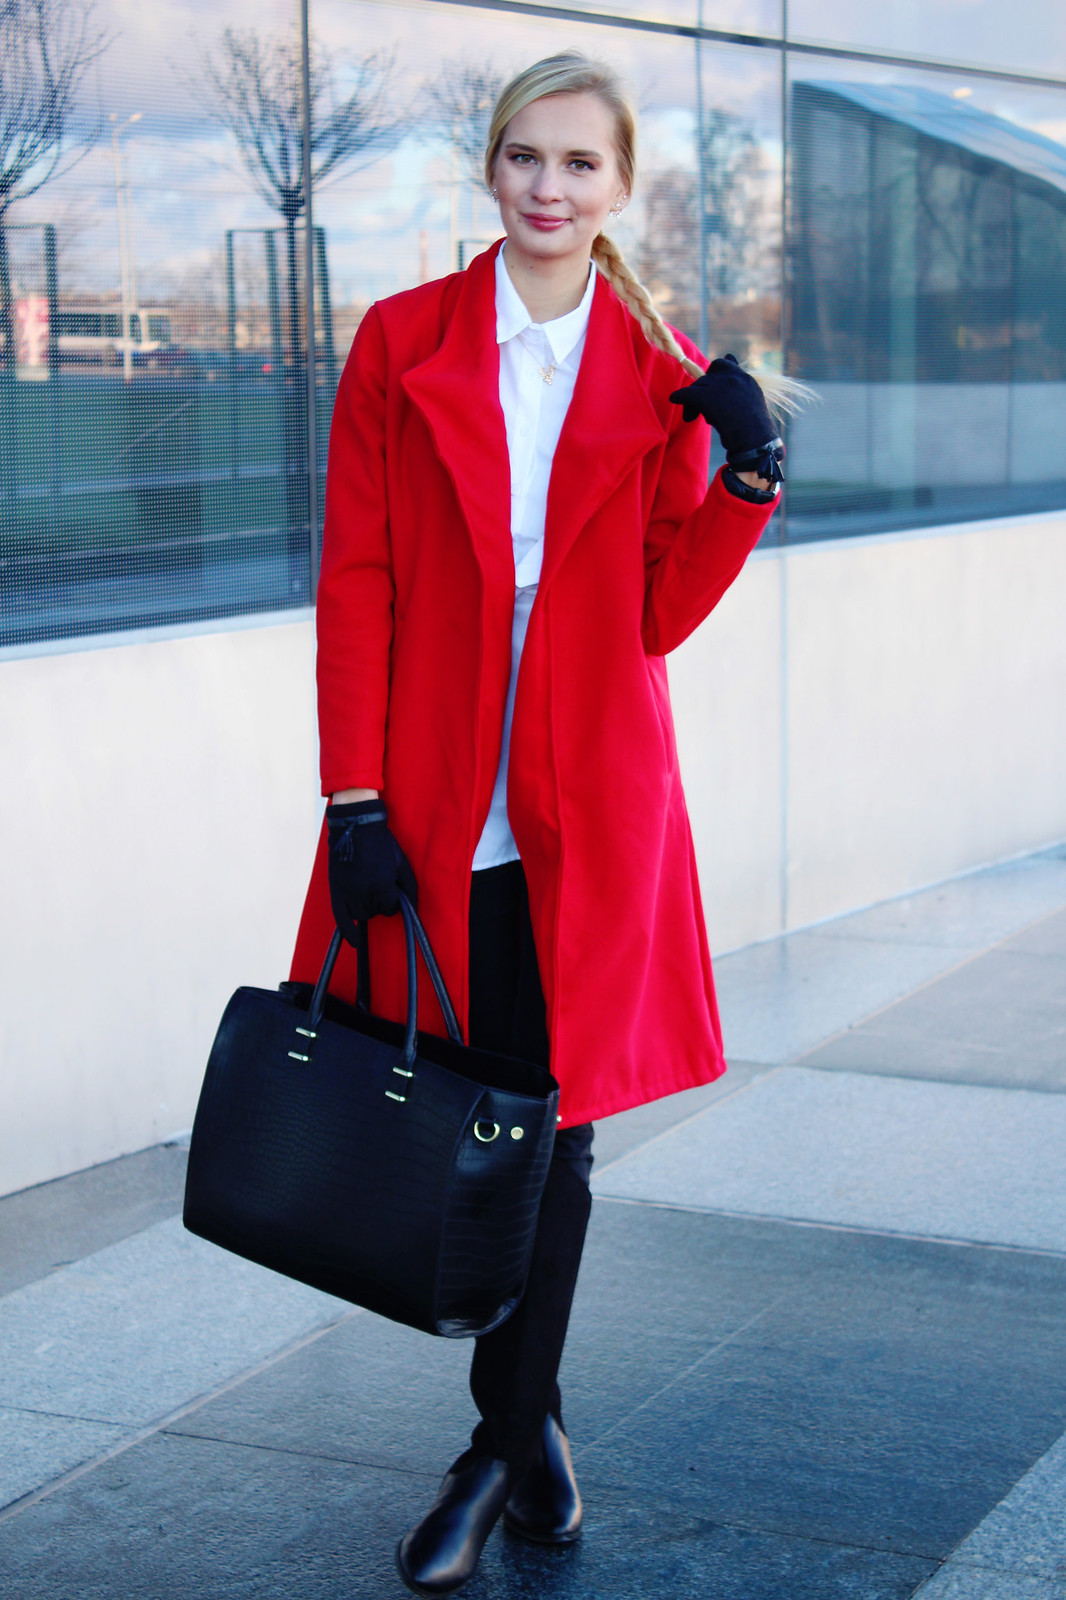 Styling a red coat